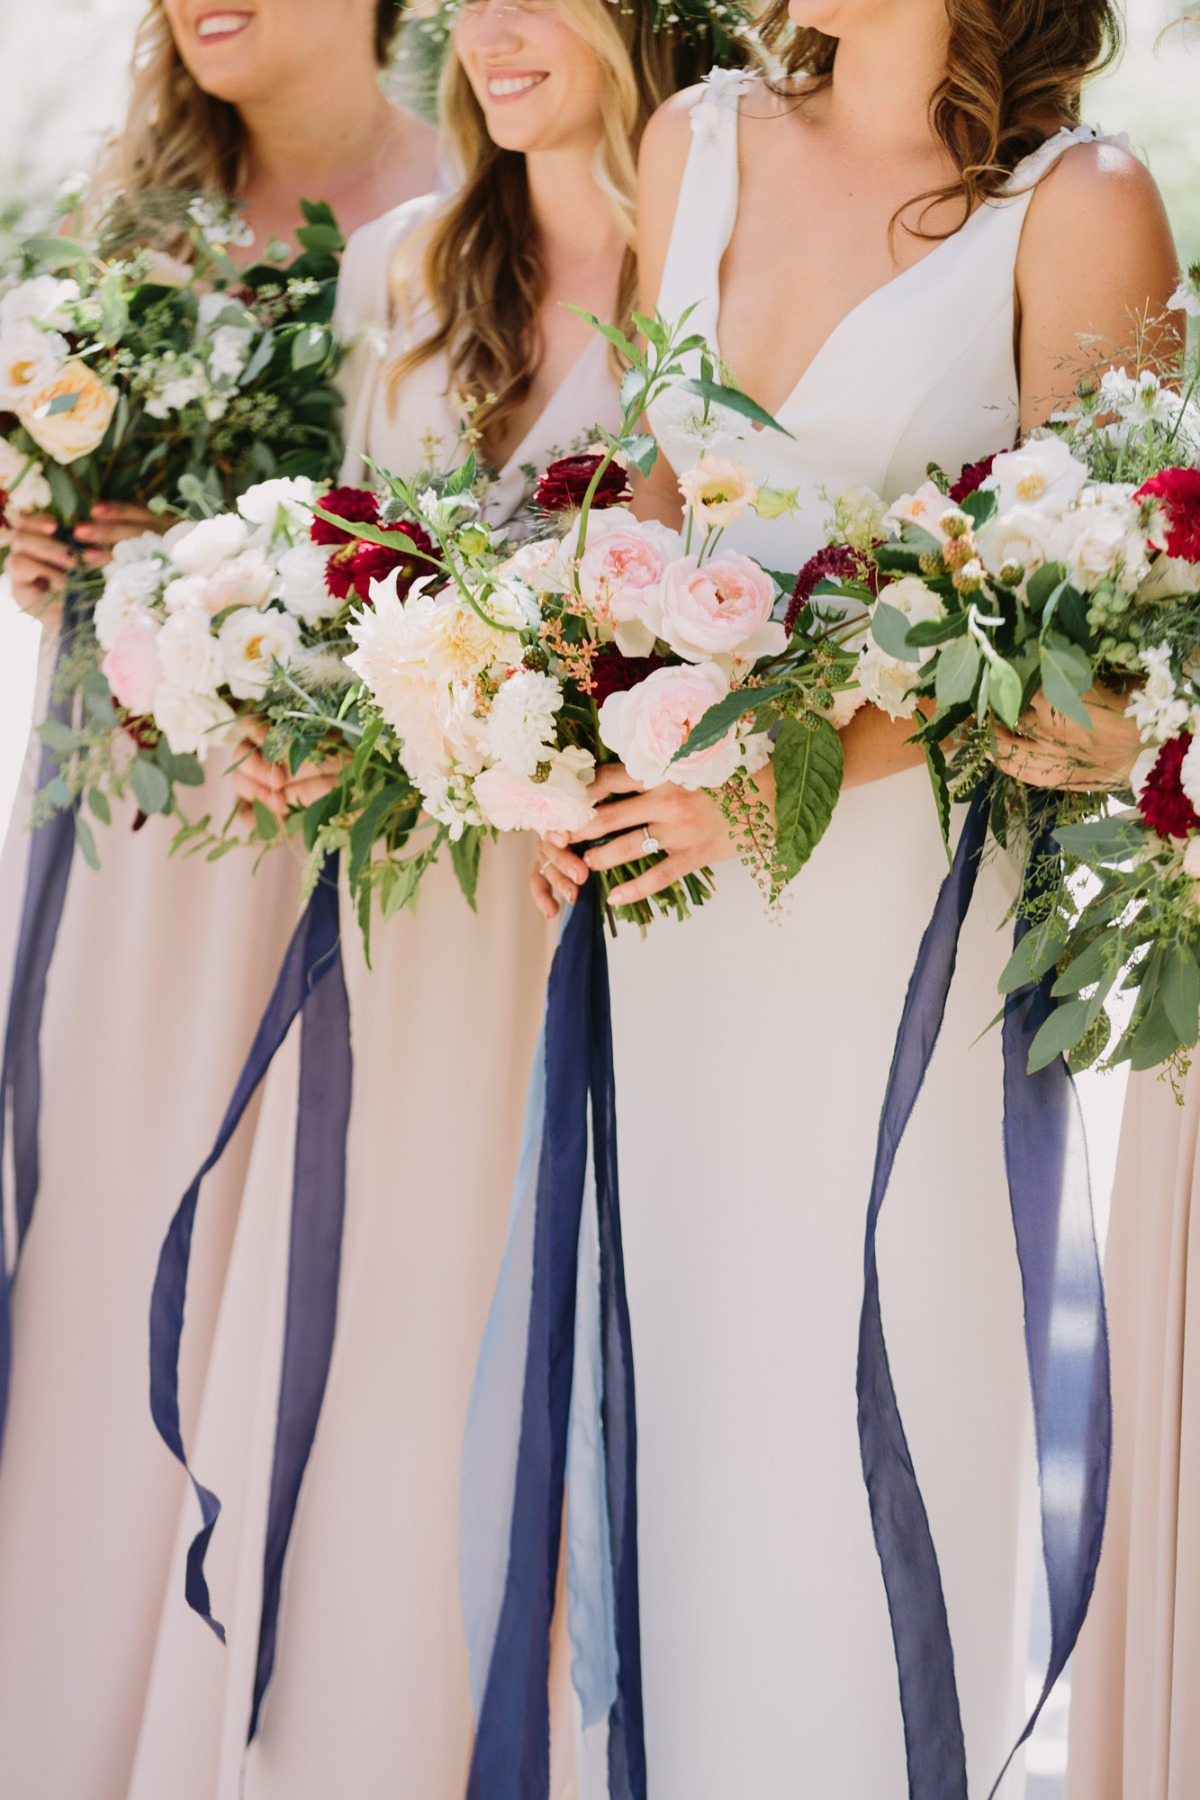 Laura & Gaetano: Rustic Highlights from a Charming, Darling Day